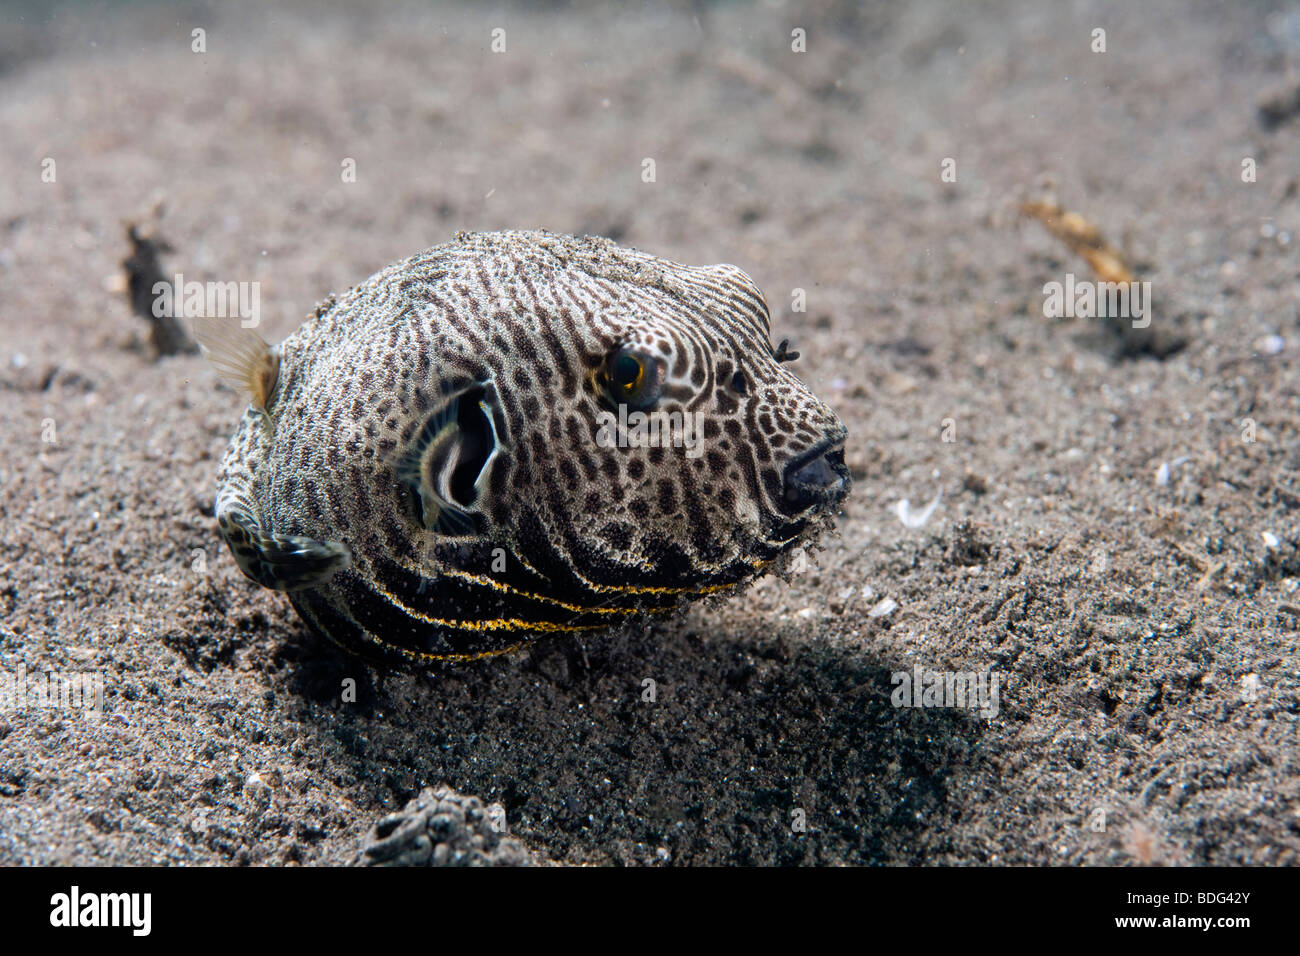 Giant pufferfish (Arothron sp.), Lembeh Strait, Sulawesi, Indonesia, Southeast Asia - Stock Image